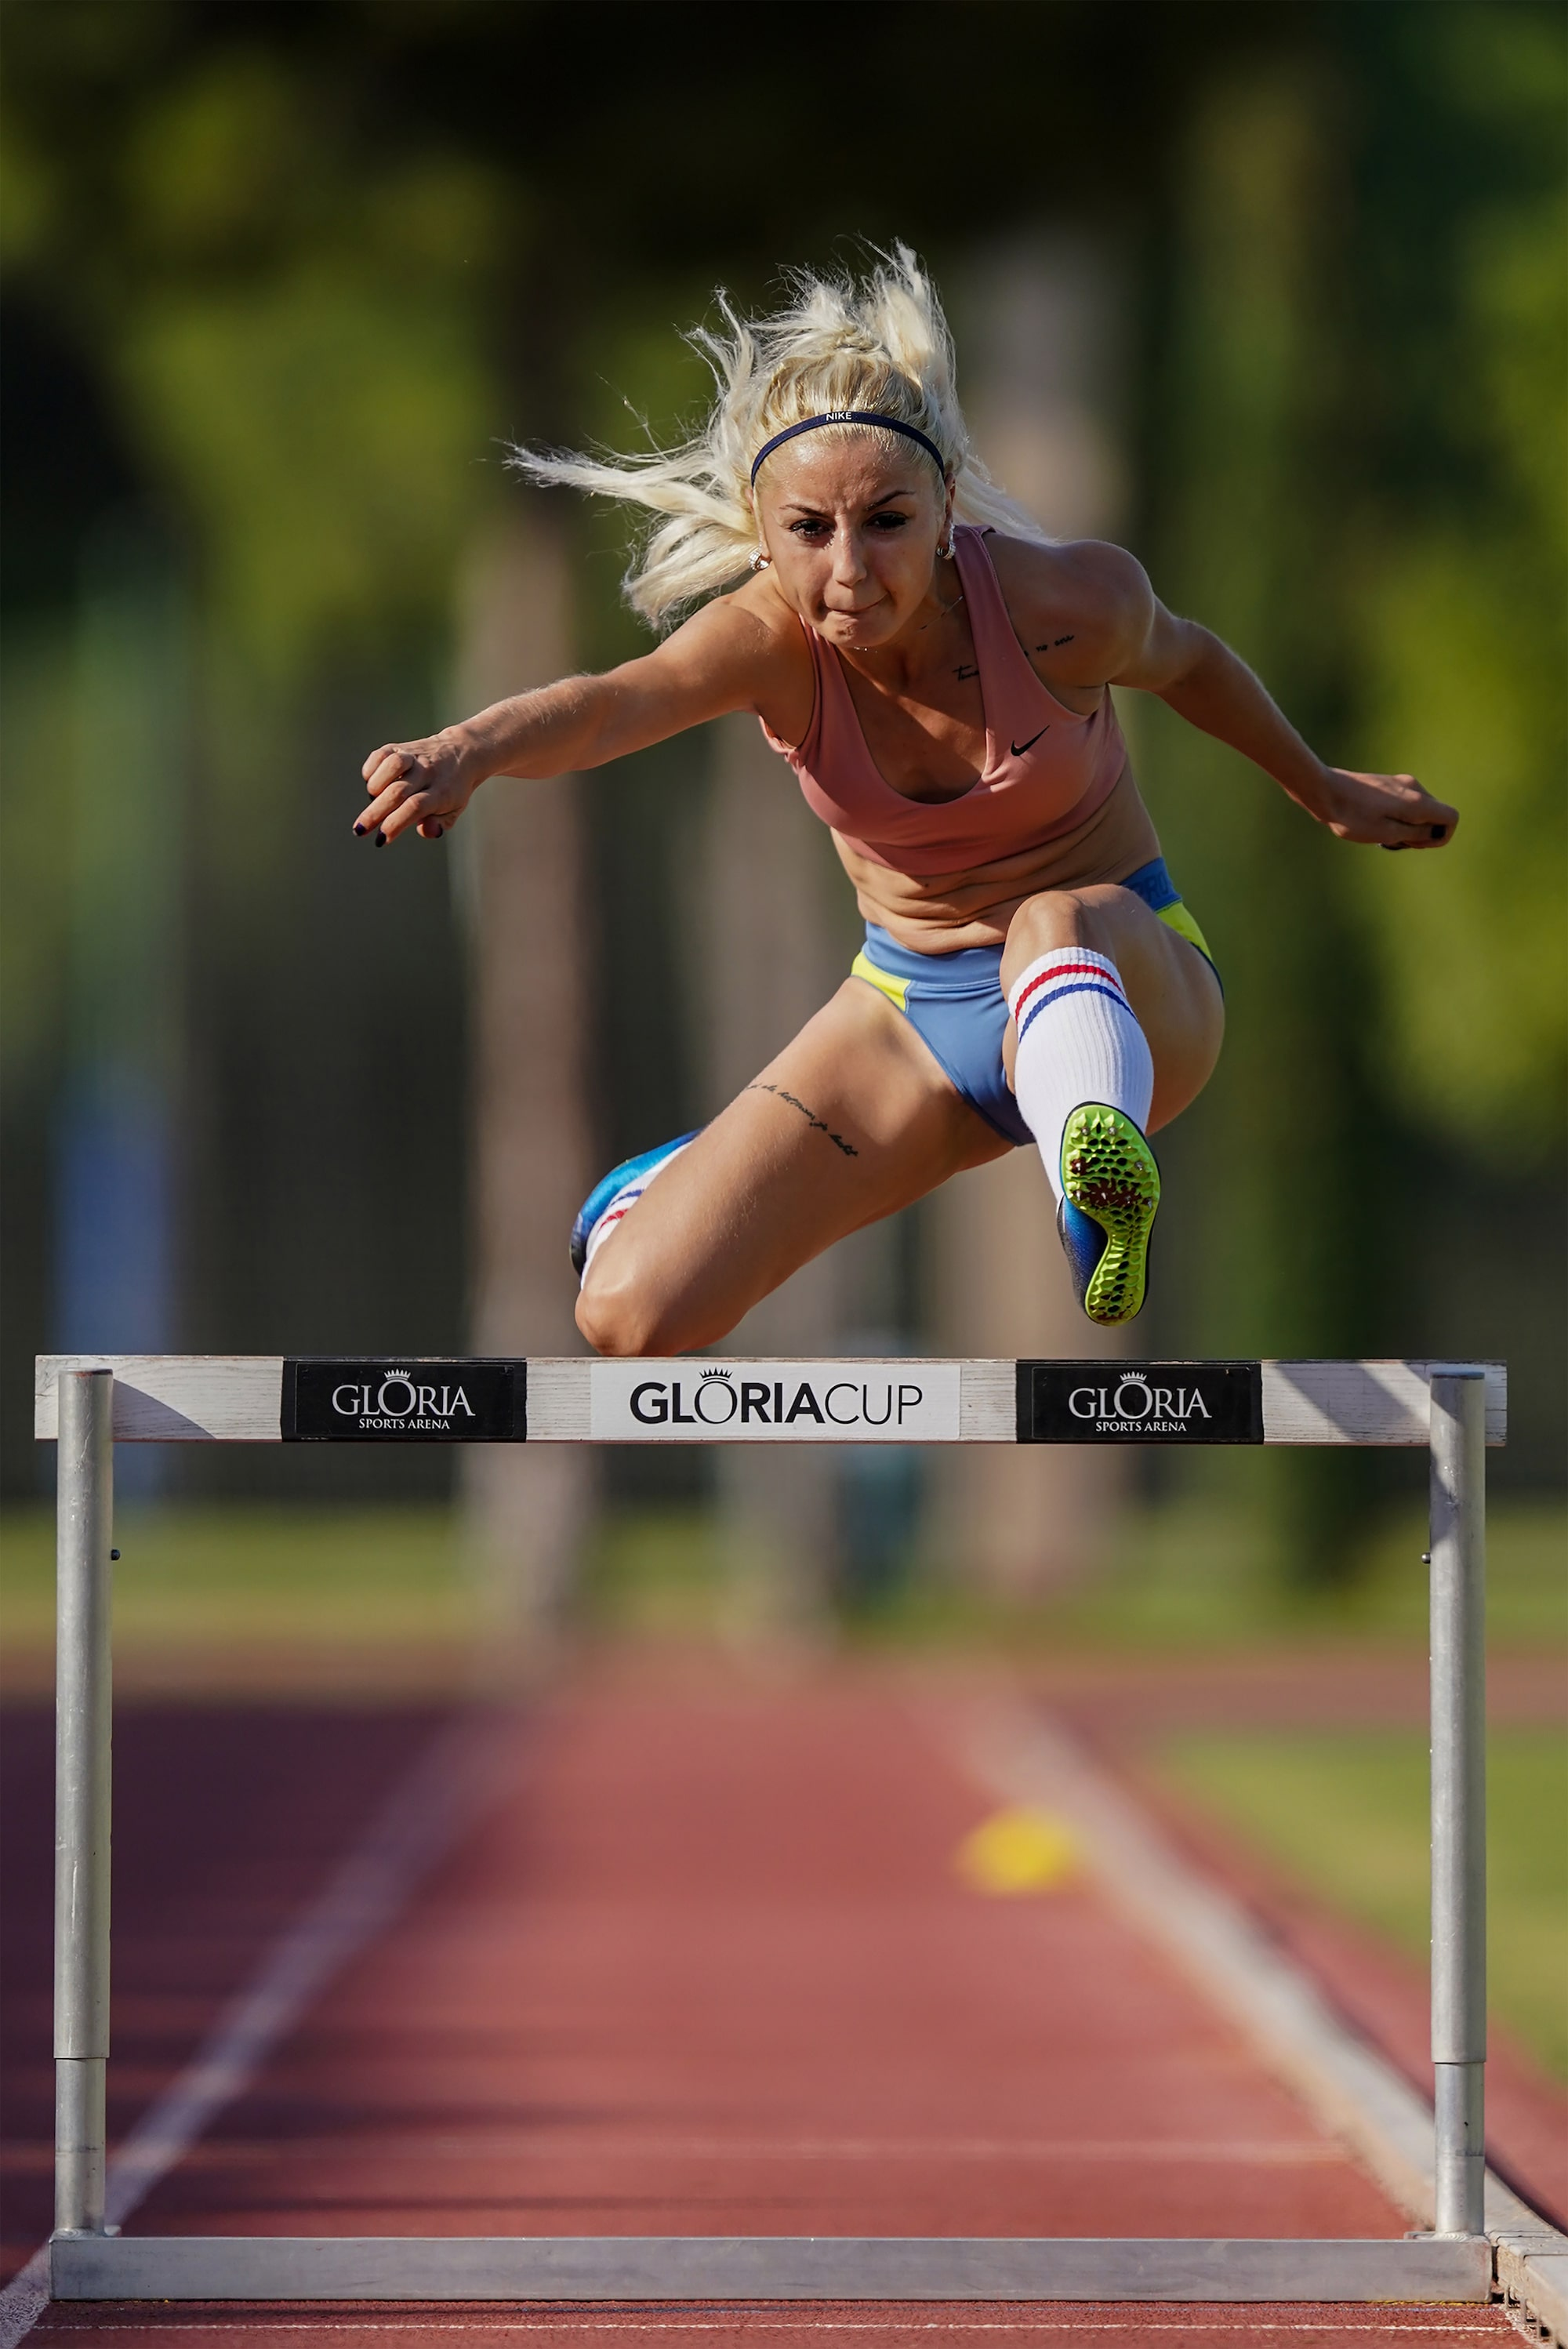 bob martin sony alpha 9II runner caught in mid jump over a hurdle